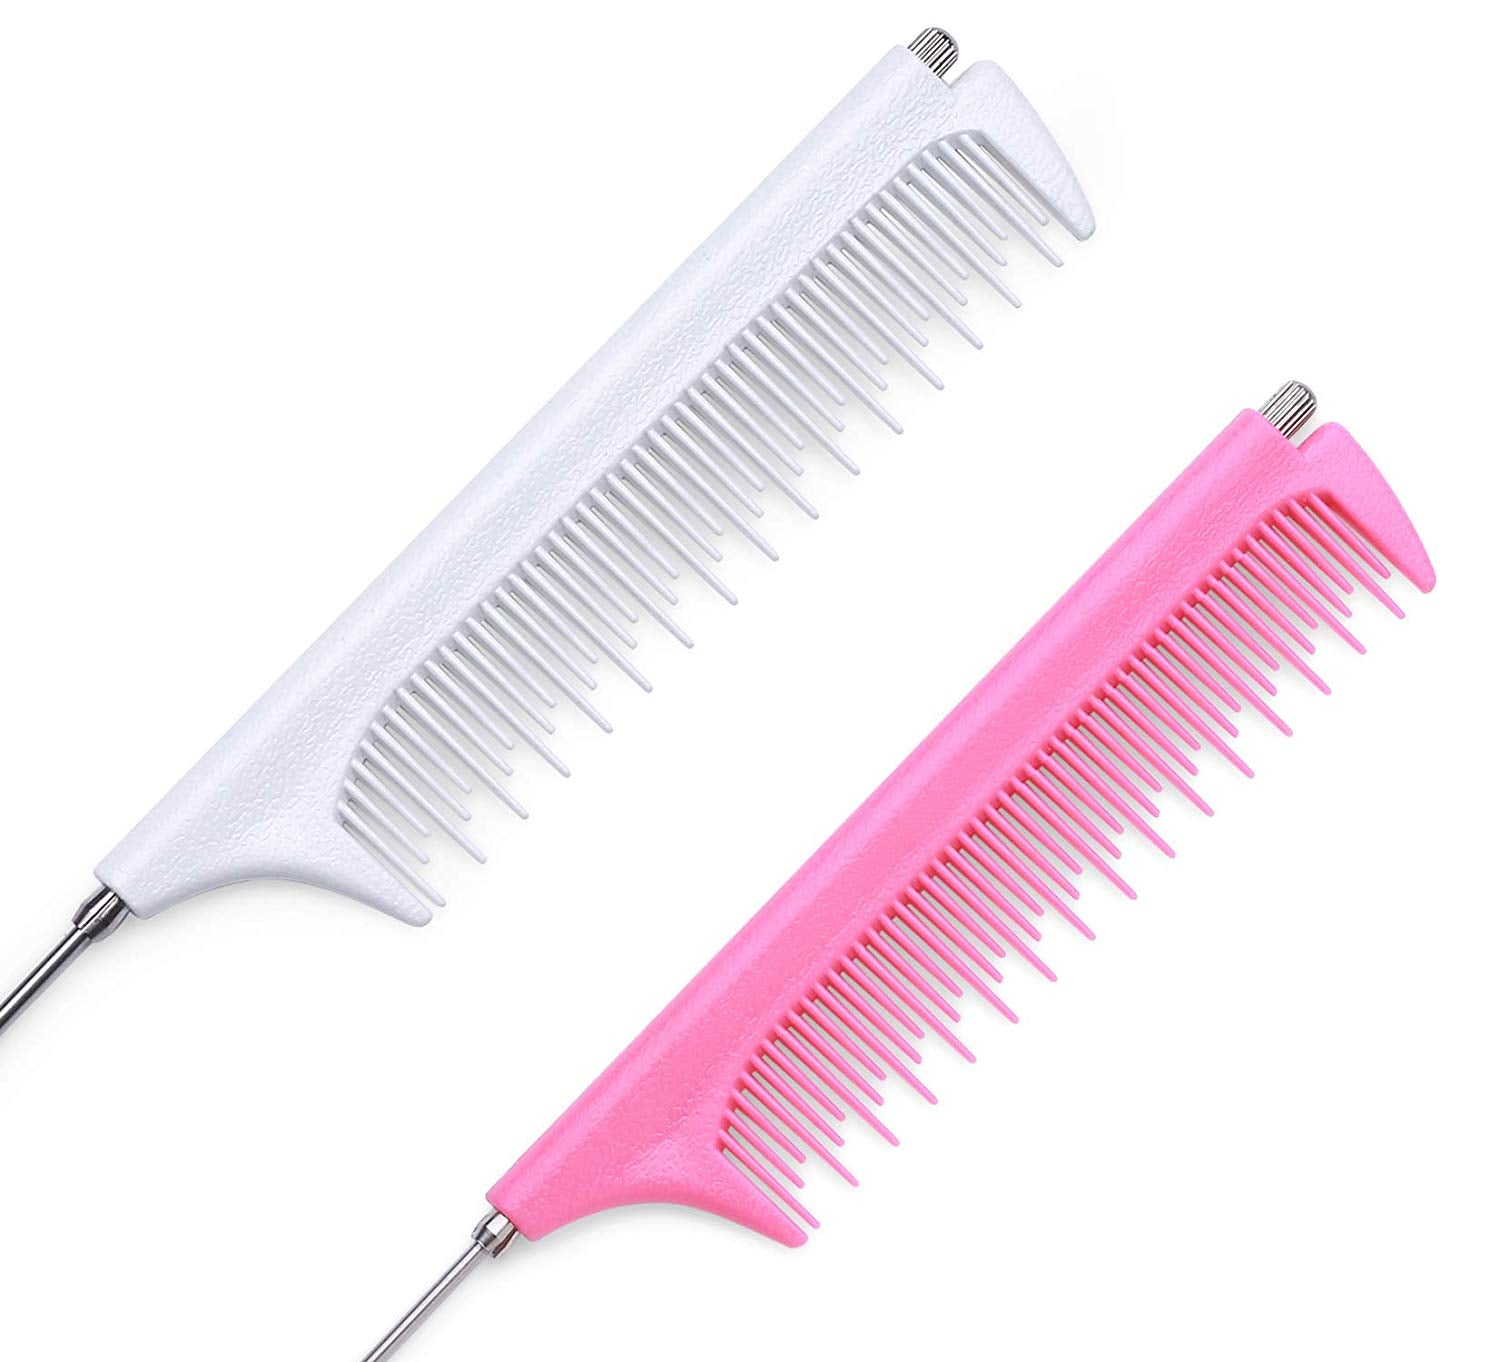 Retractable Pintail Combs (2 Pack)-Metal Rat Tail Hair Combs for Women Styling